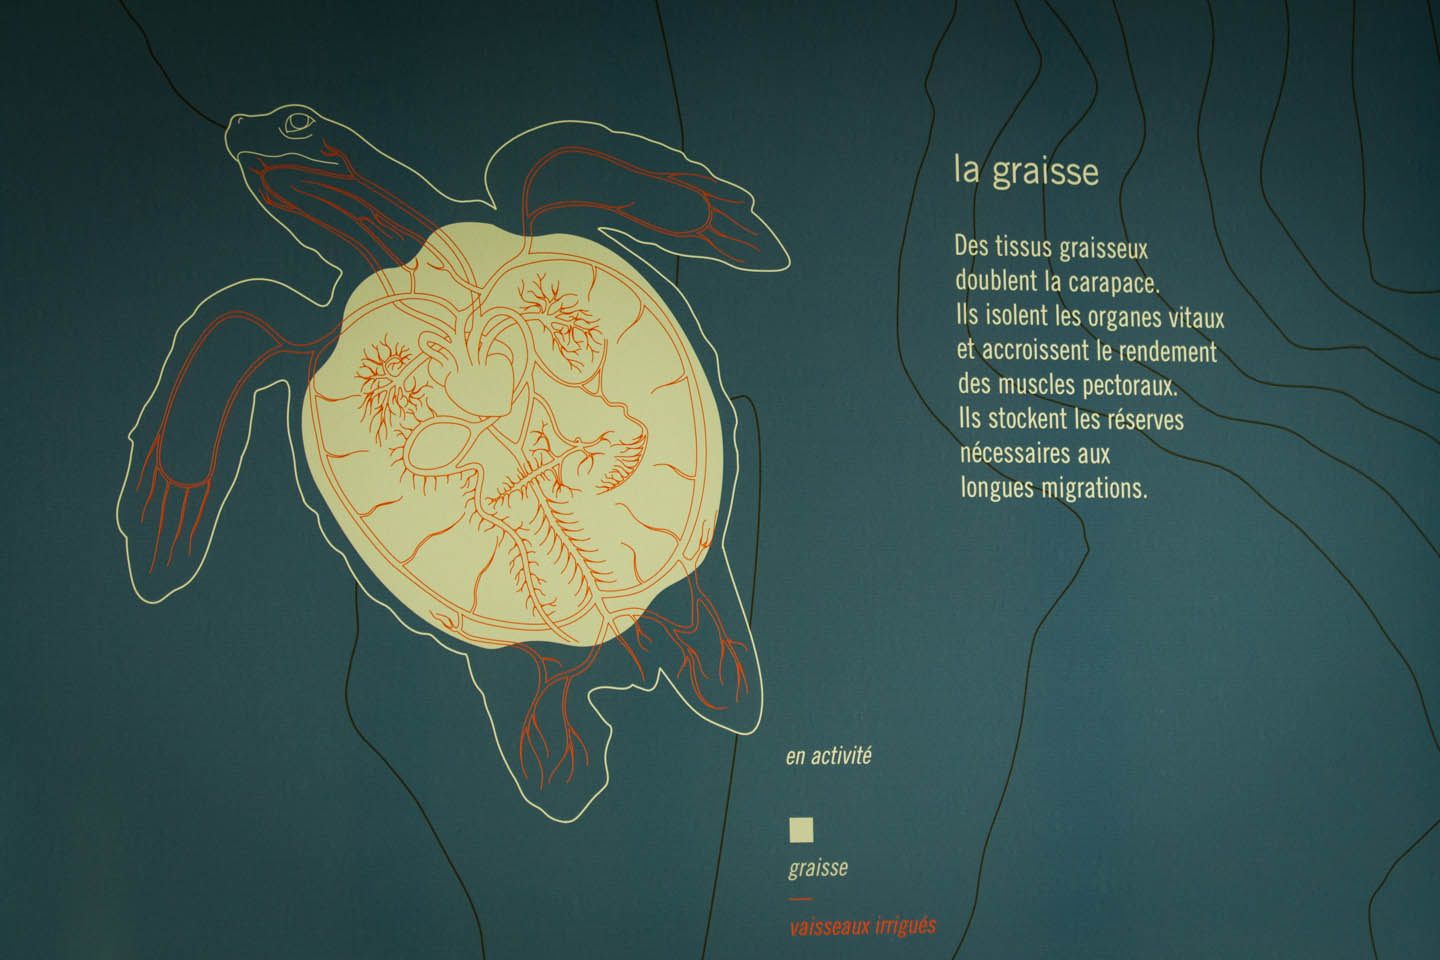 Kelonia Turtle Sanctuary information graphic Réunion Reunion / Schildkröten  Aquarium Grafik